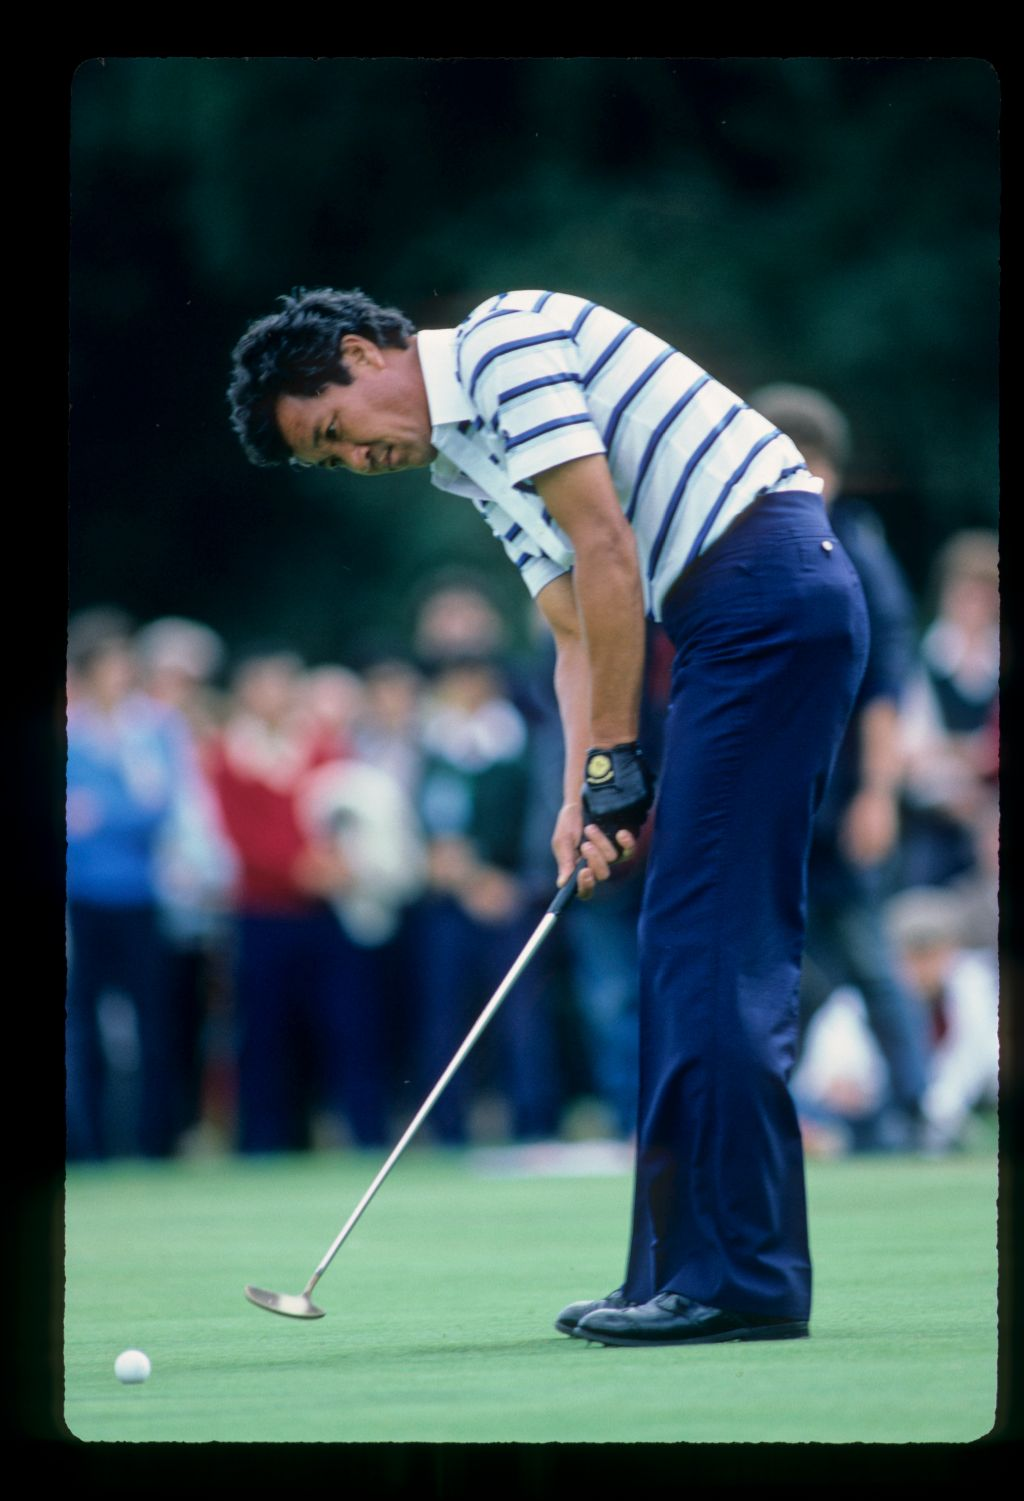 Isao Aoki putting on his way to winning the 1983 European Open